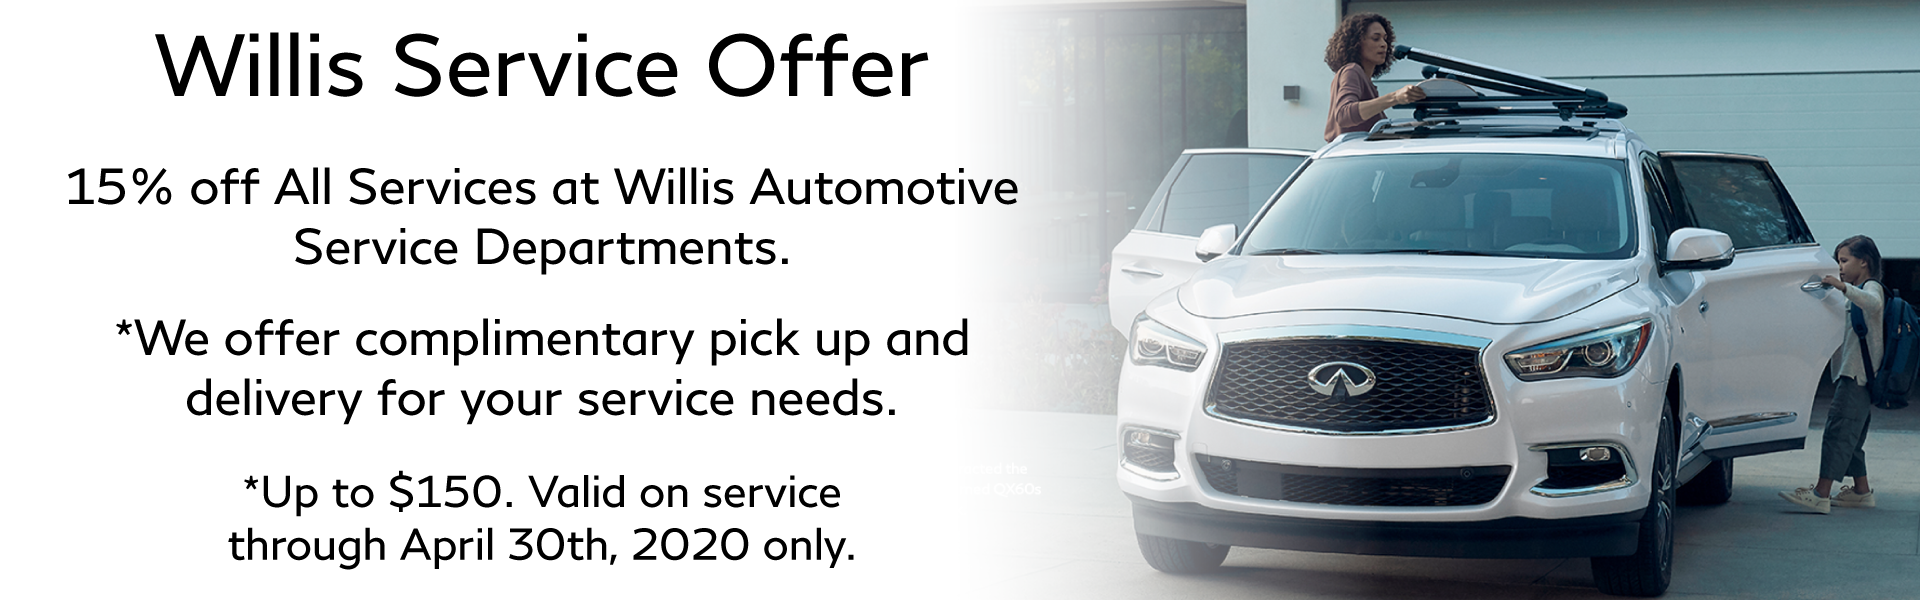 Willis Service Offer. 15% off All Services at Willis Automotive Service Departments. *We offer complimentary pick up and delivery for your service needs. *Up to $150. Valid on service  through April 30th, 2020 only.